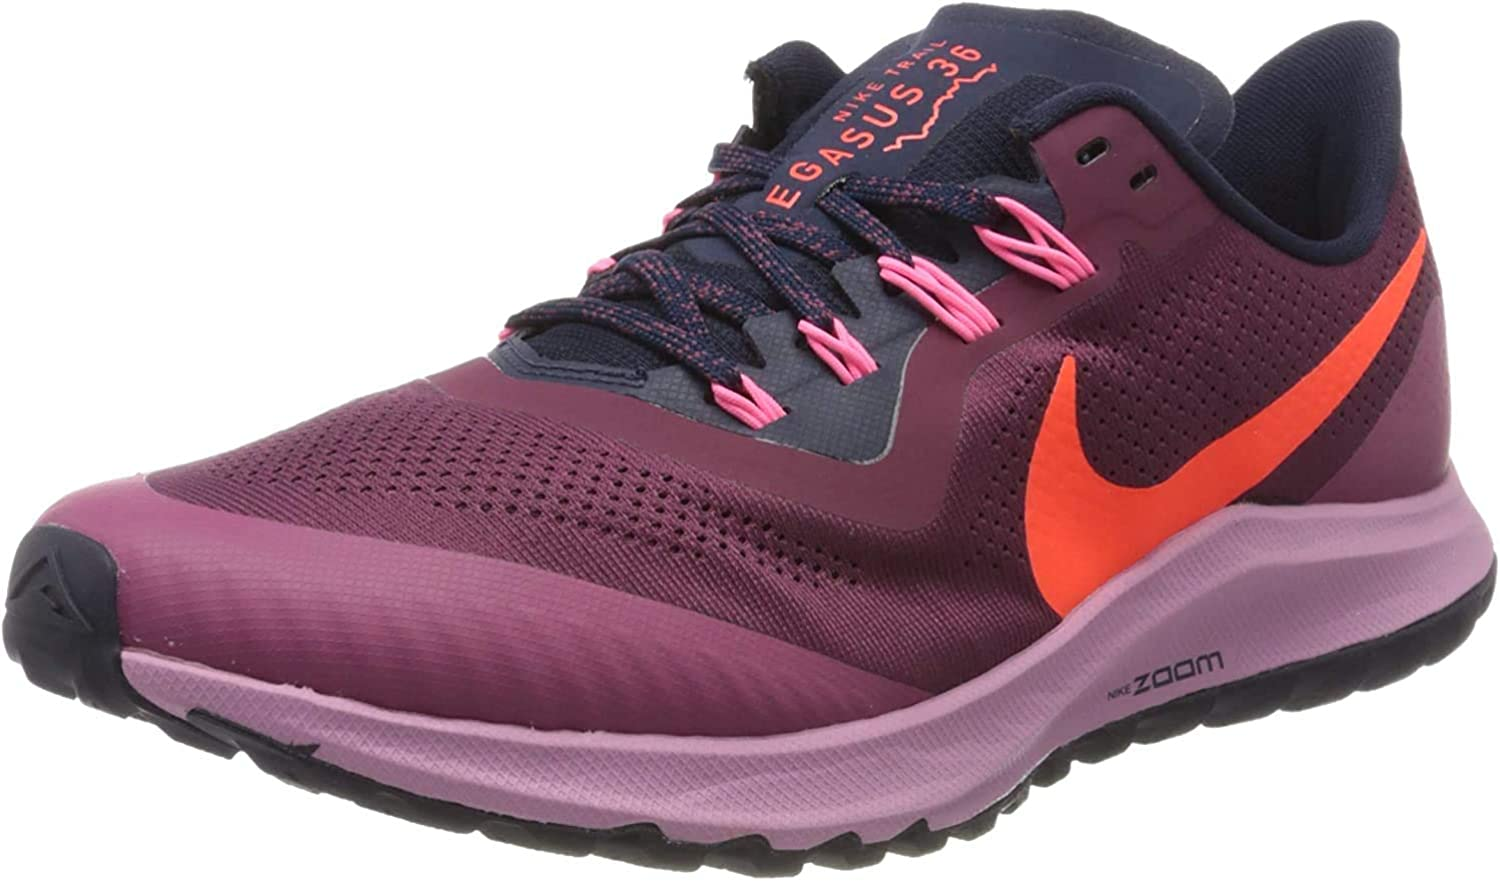 Nike Women's Training Competition Running Shoes, Lt Orewood BRN Black Pink Blast, ys/m Villain Red Total Crimson Black Blue